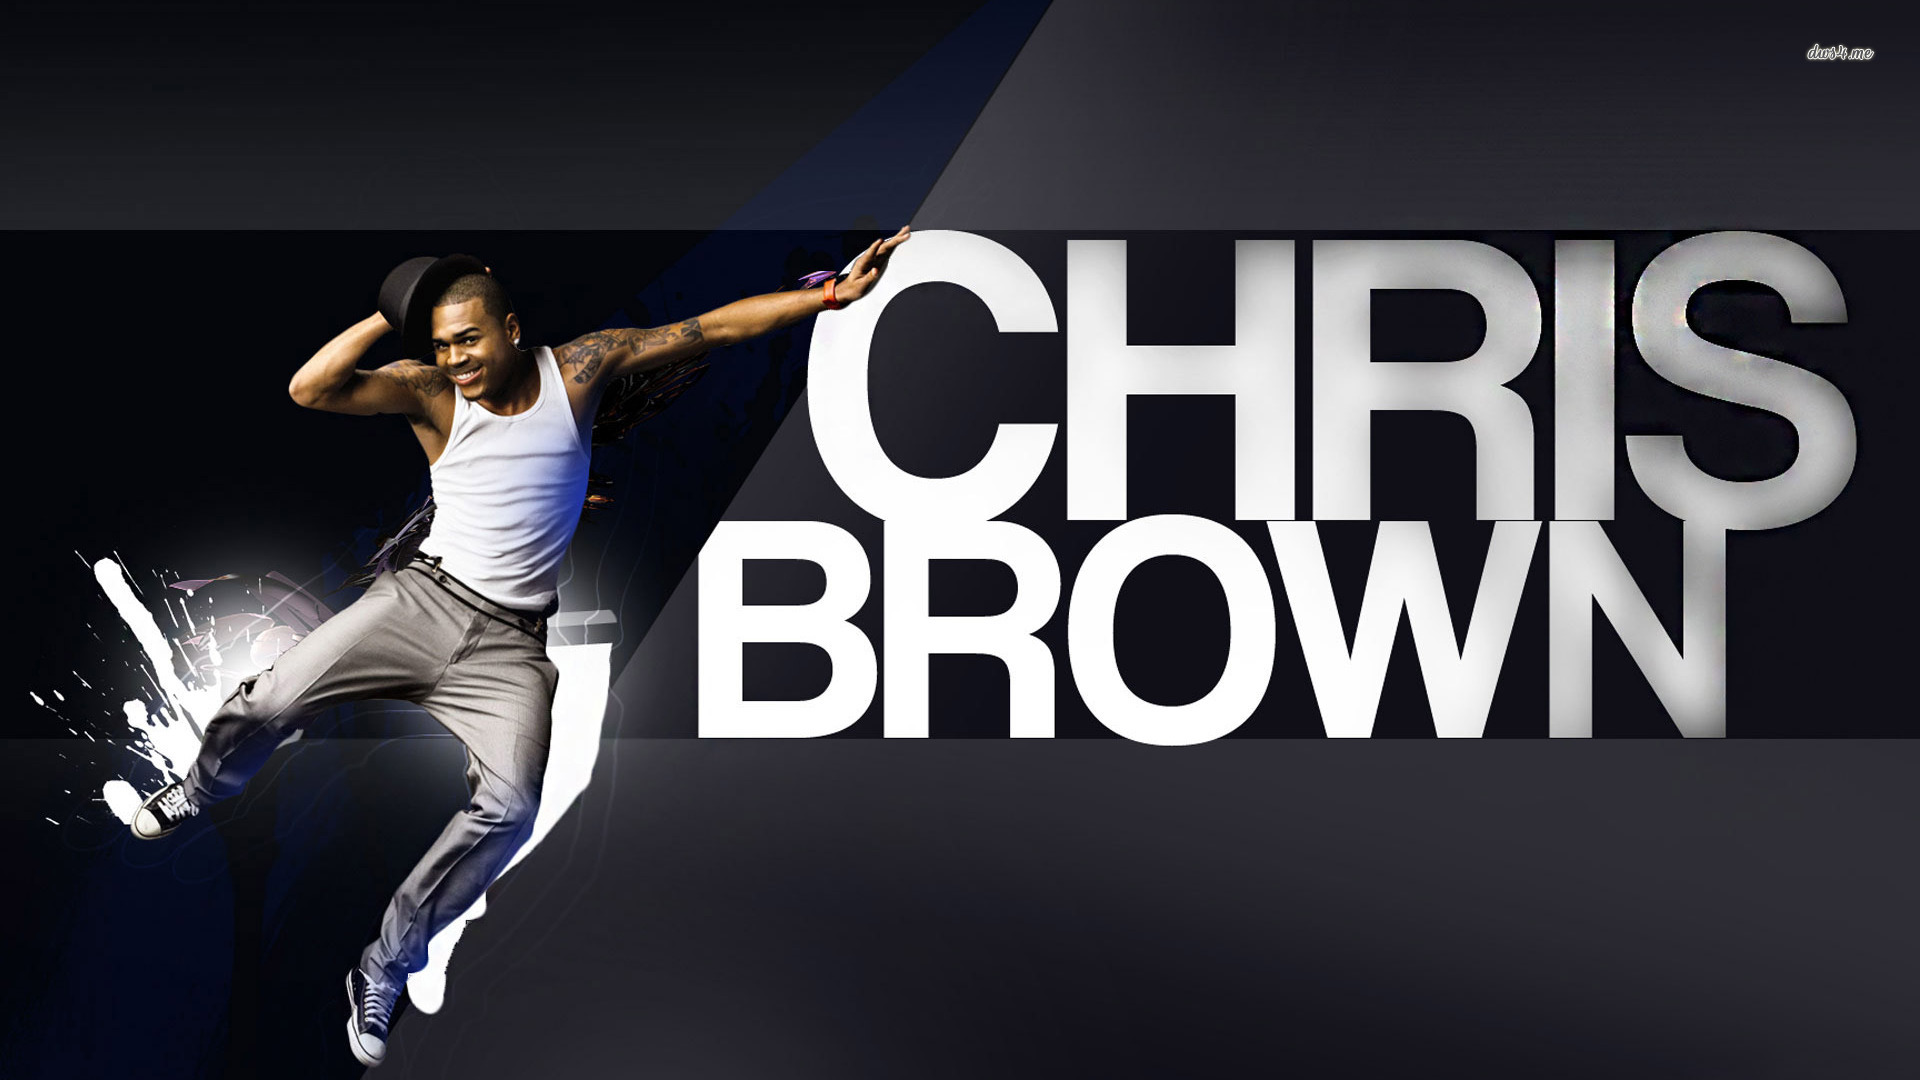 Chris Brown Wallpaper 9